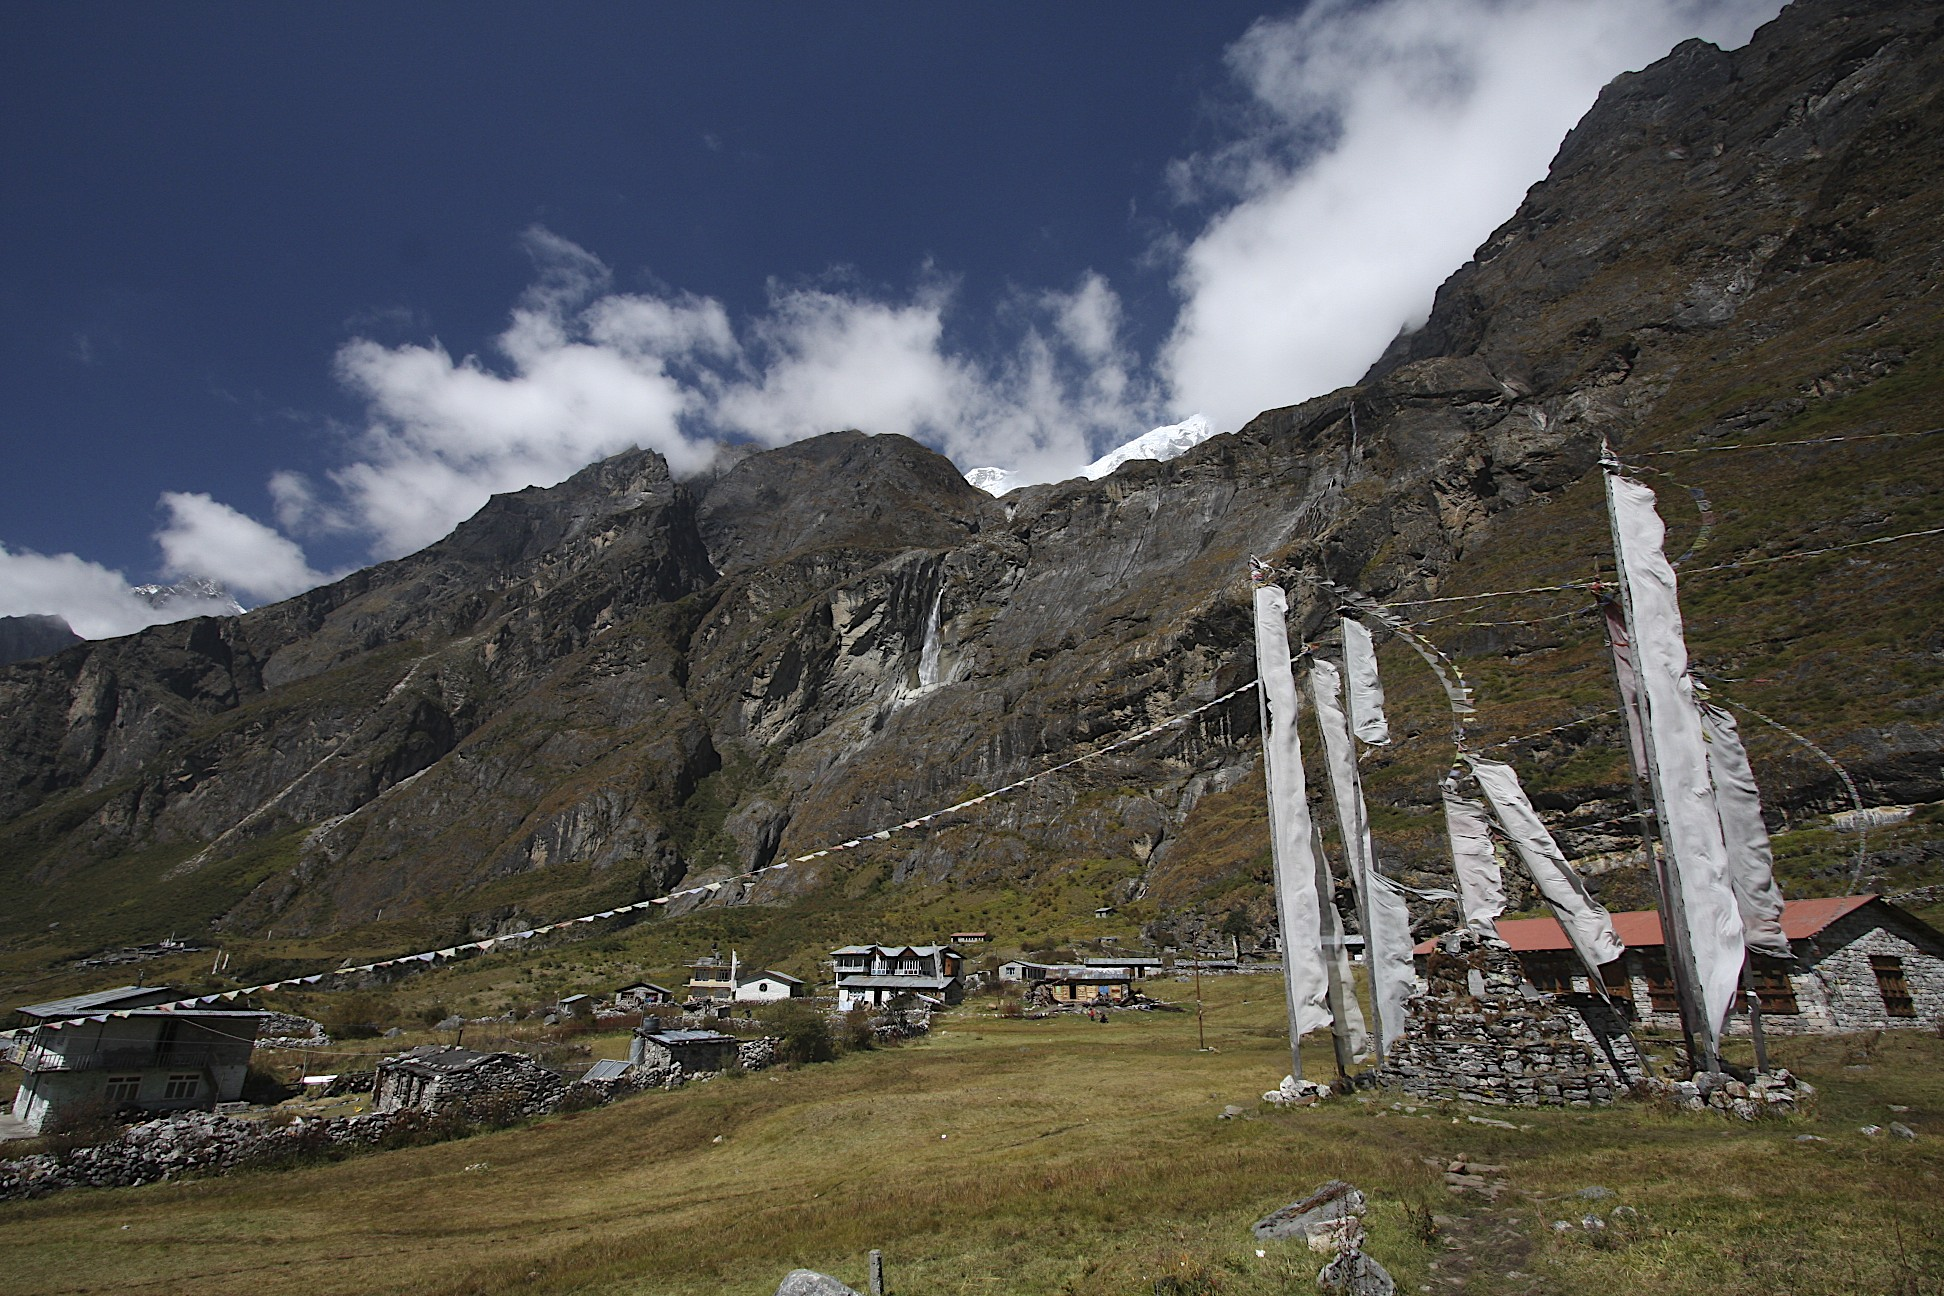 Langtang Village buried by the earthquake of 2014 by the avalanche from the glacier visible above the rocky cliffs.